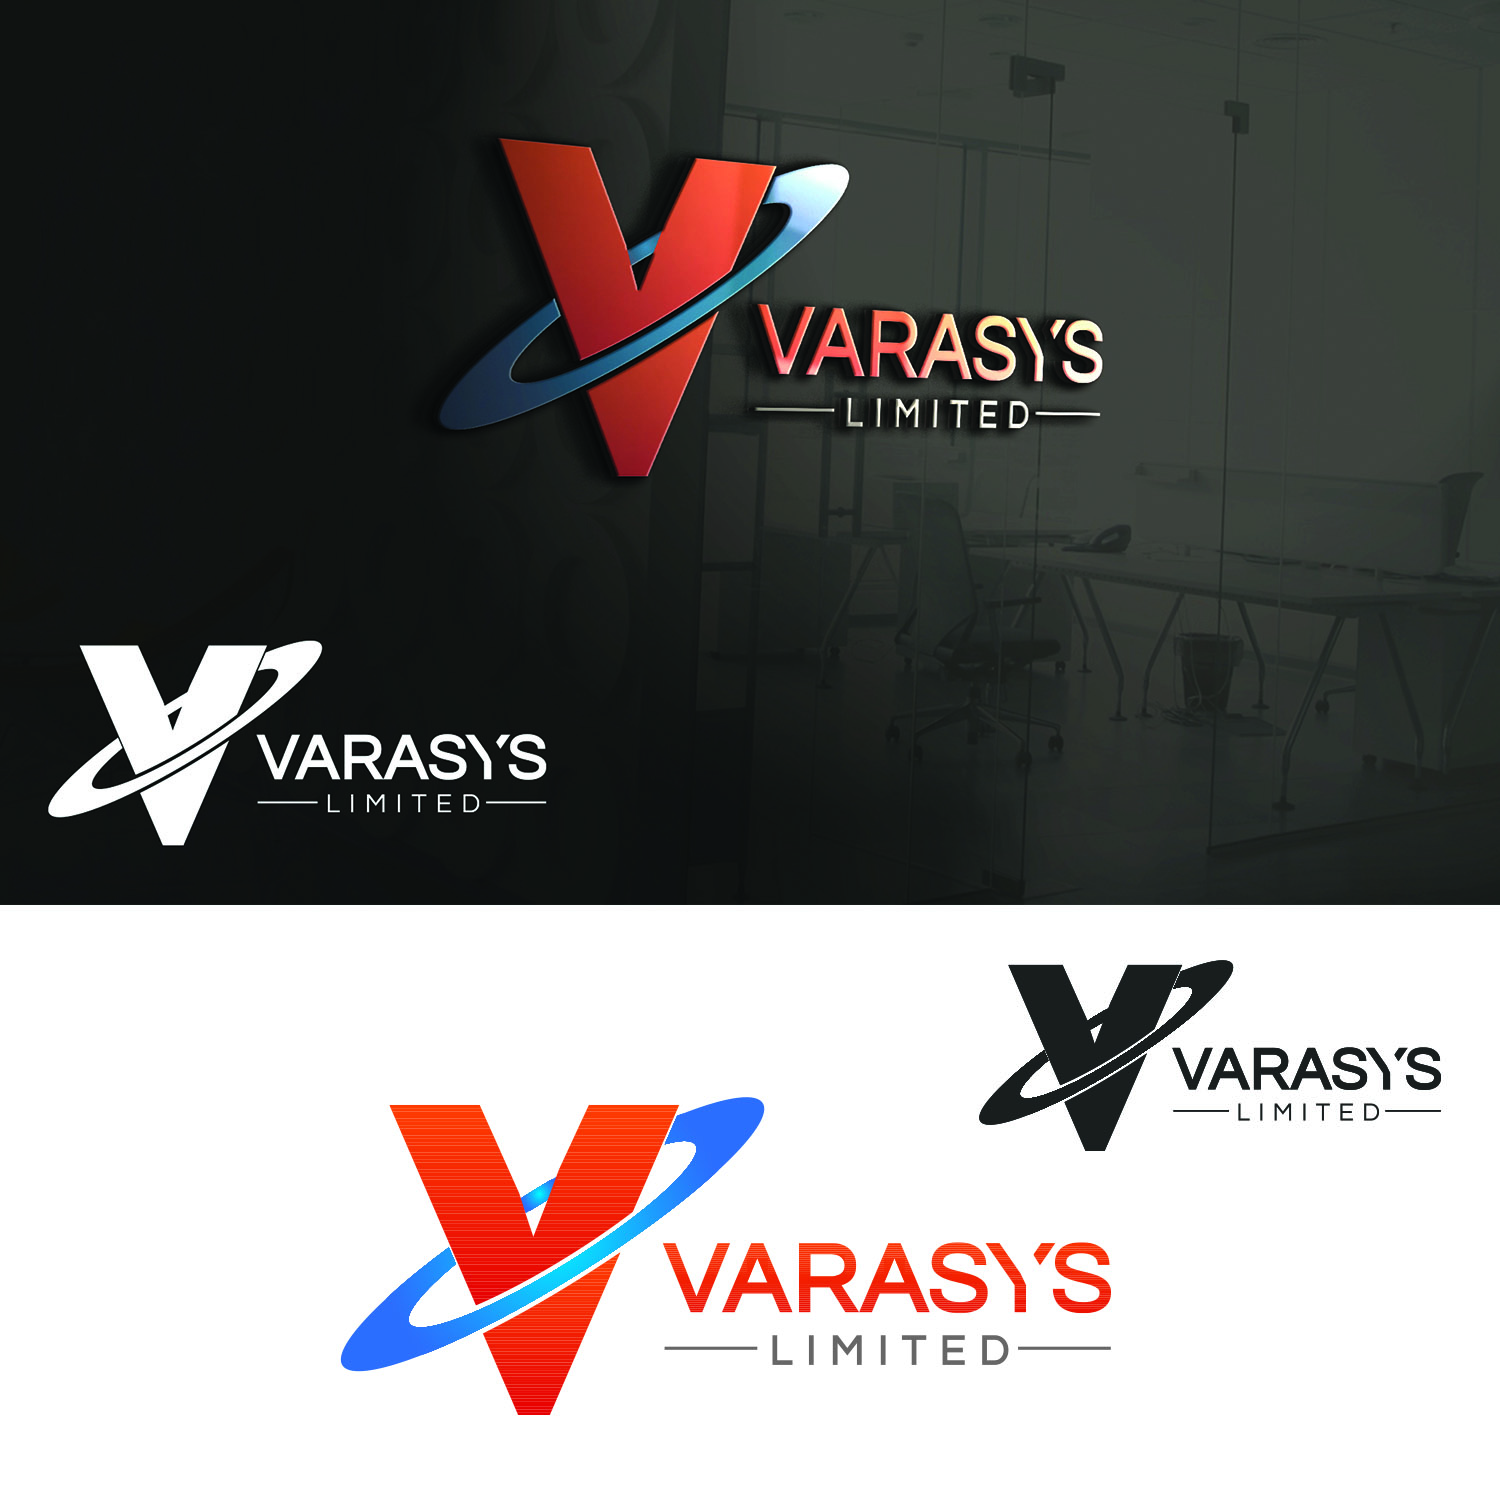 Logo Design by Umair ahmed Iqbal - Entry No. 61 in the Logo Design Contest Artistic Logo Design for VARASYS Limited.